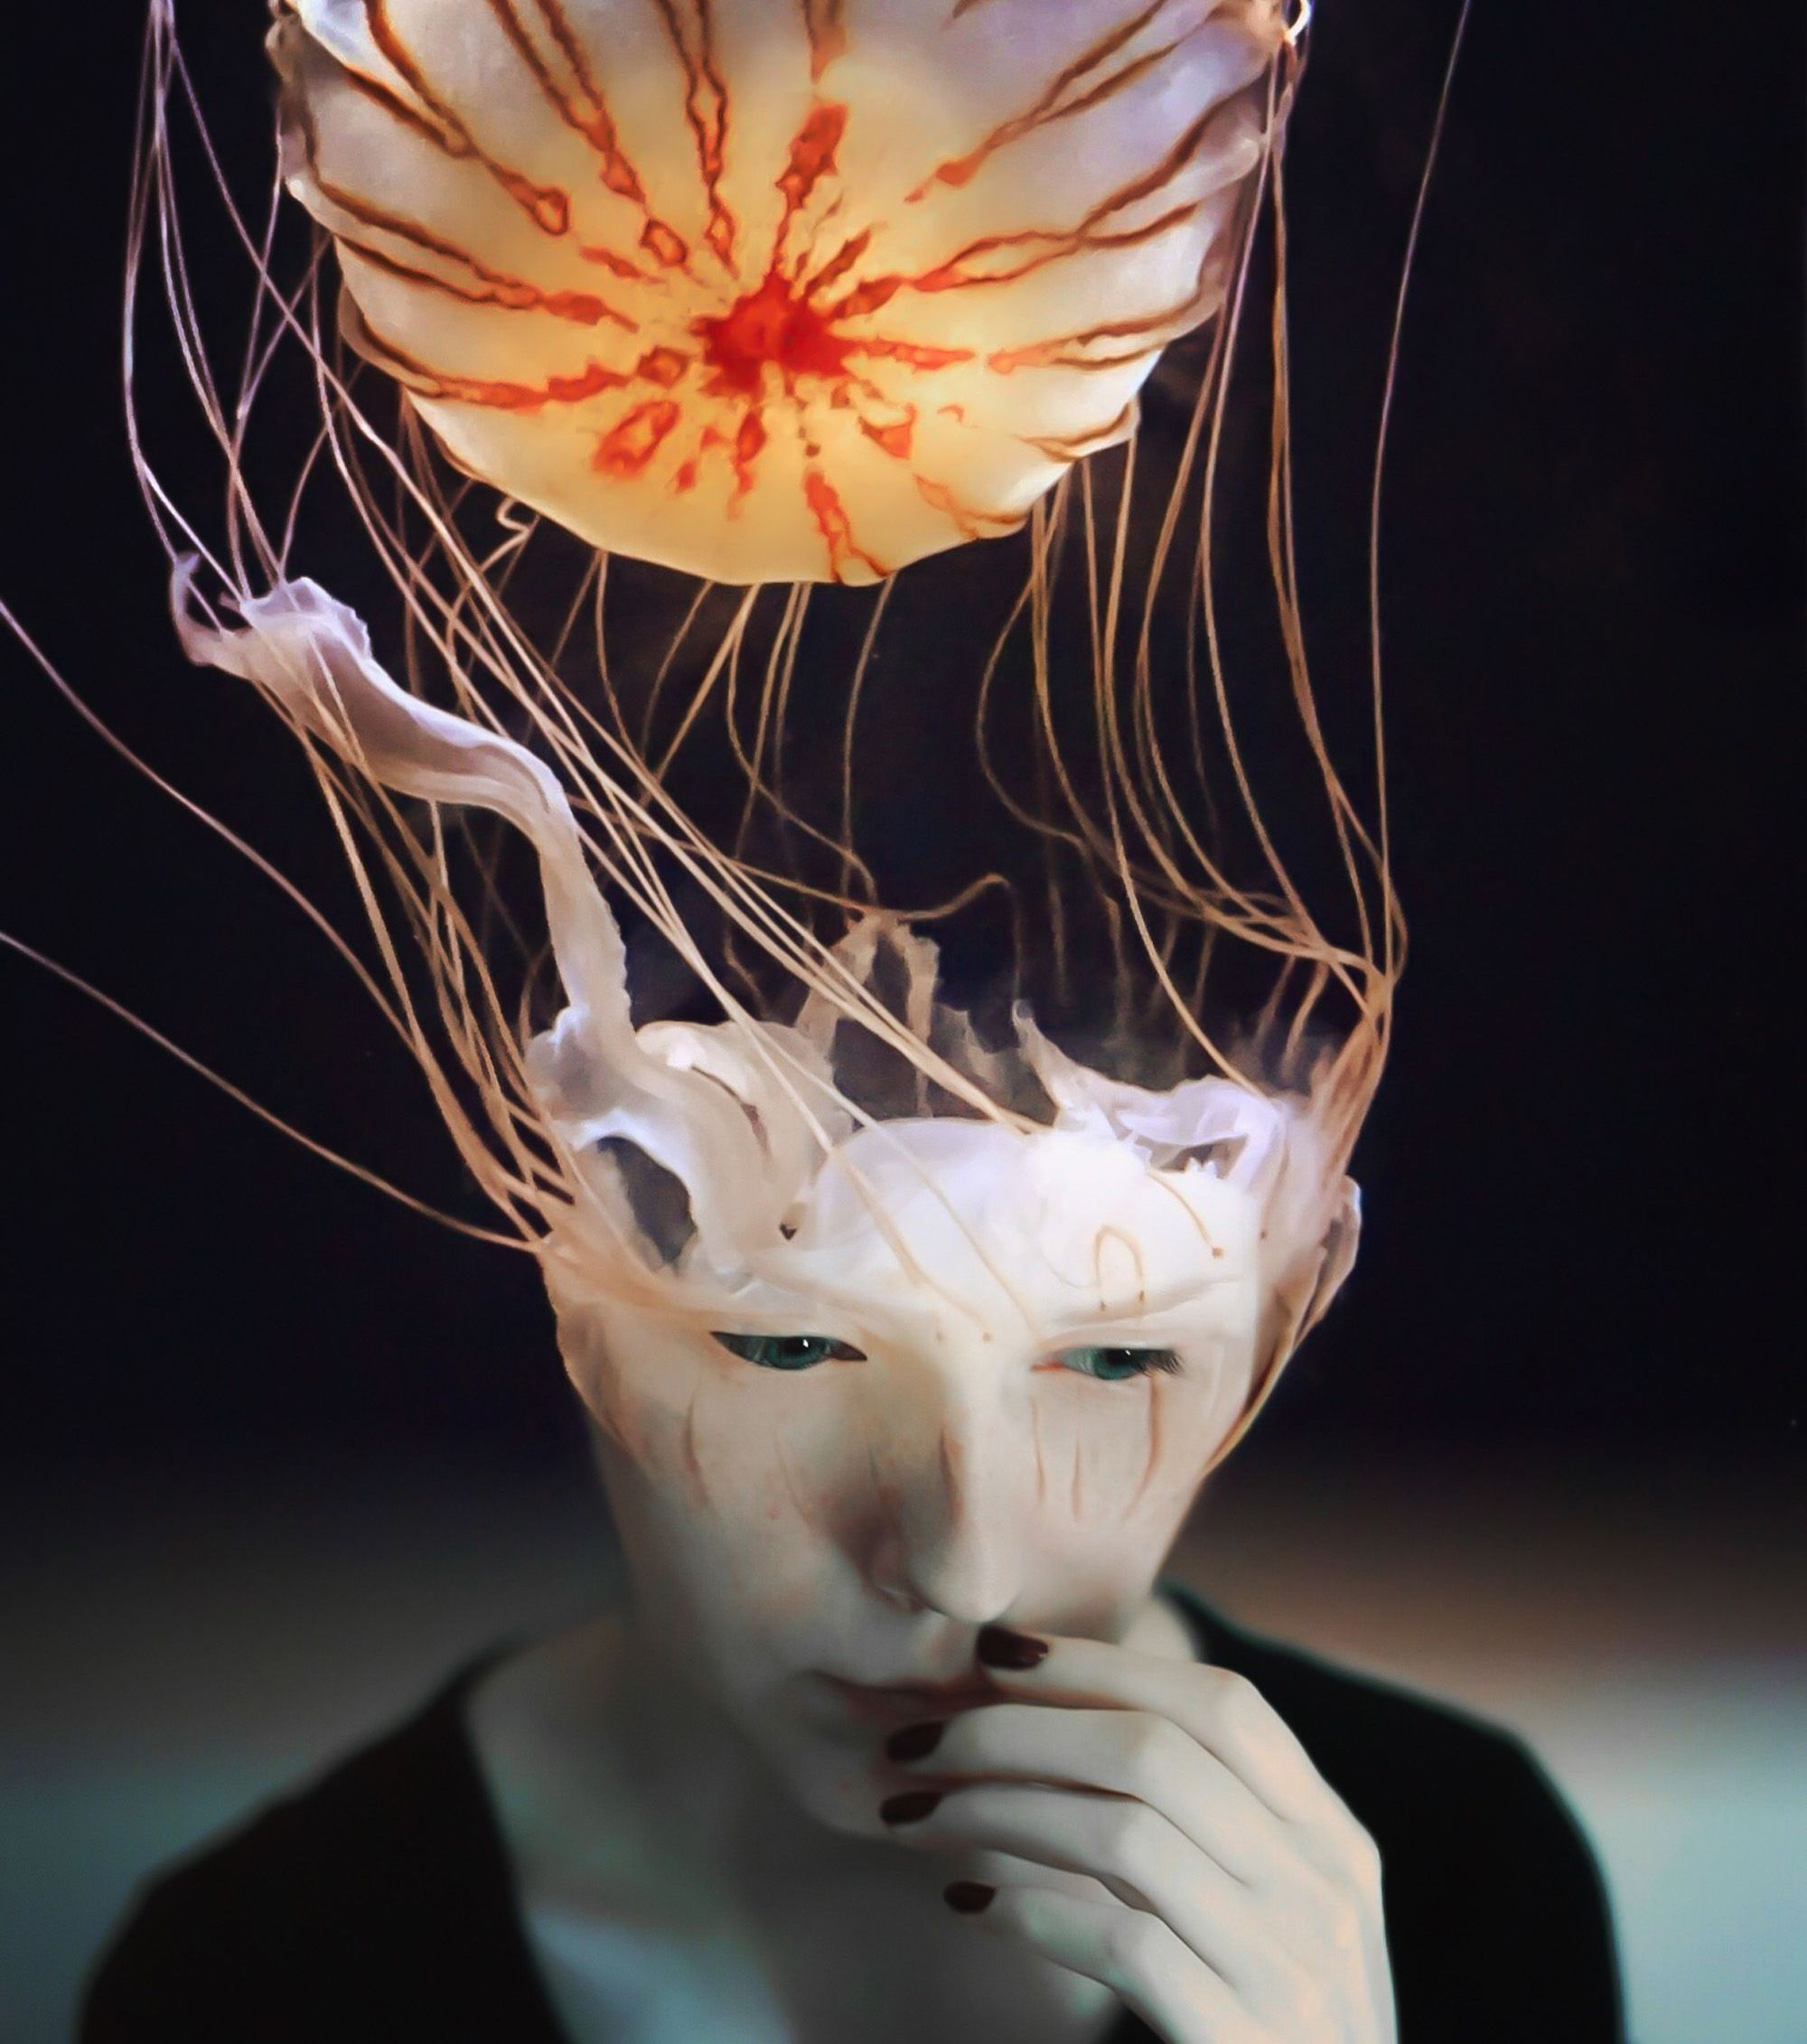 Scyphozoa, digital art, collage by cash mattock